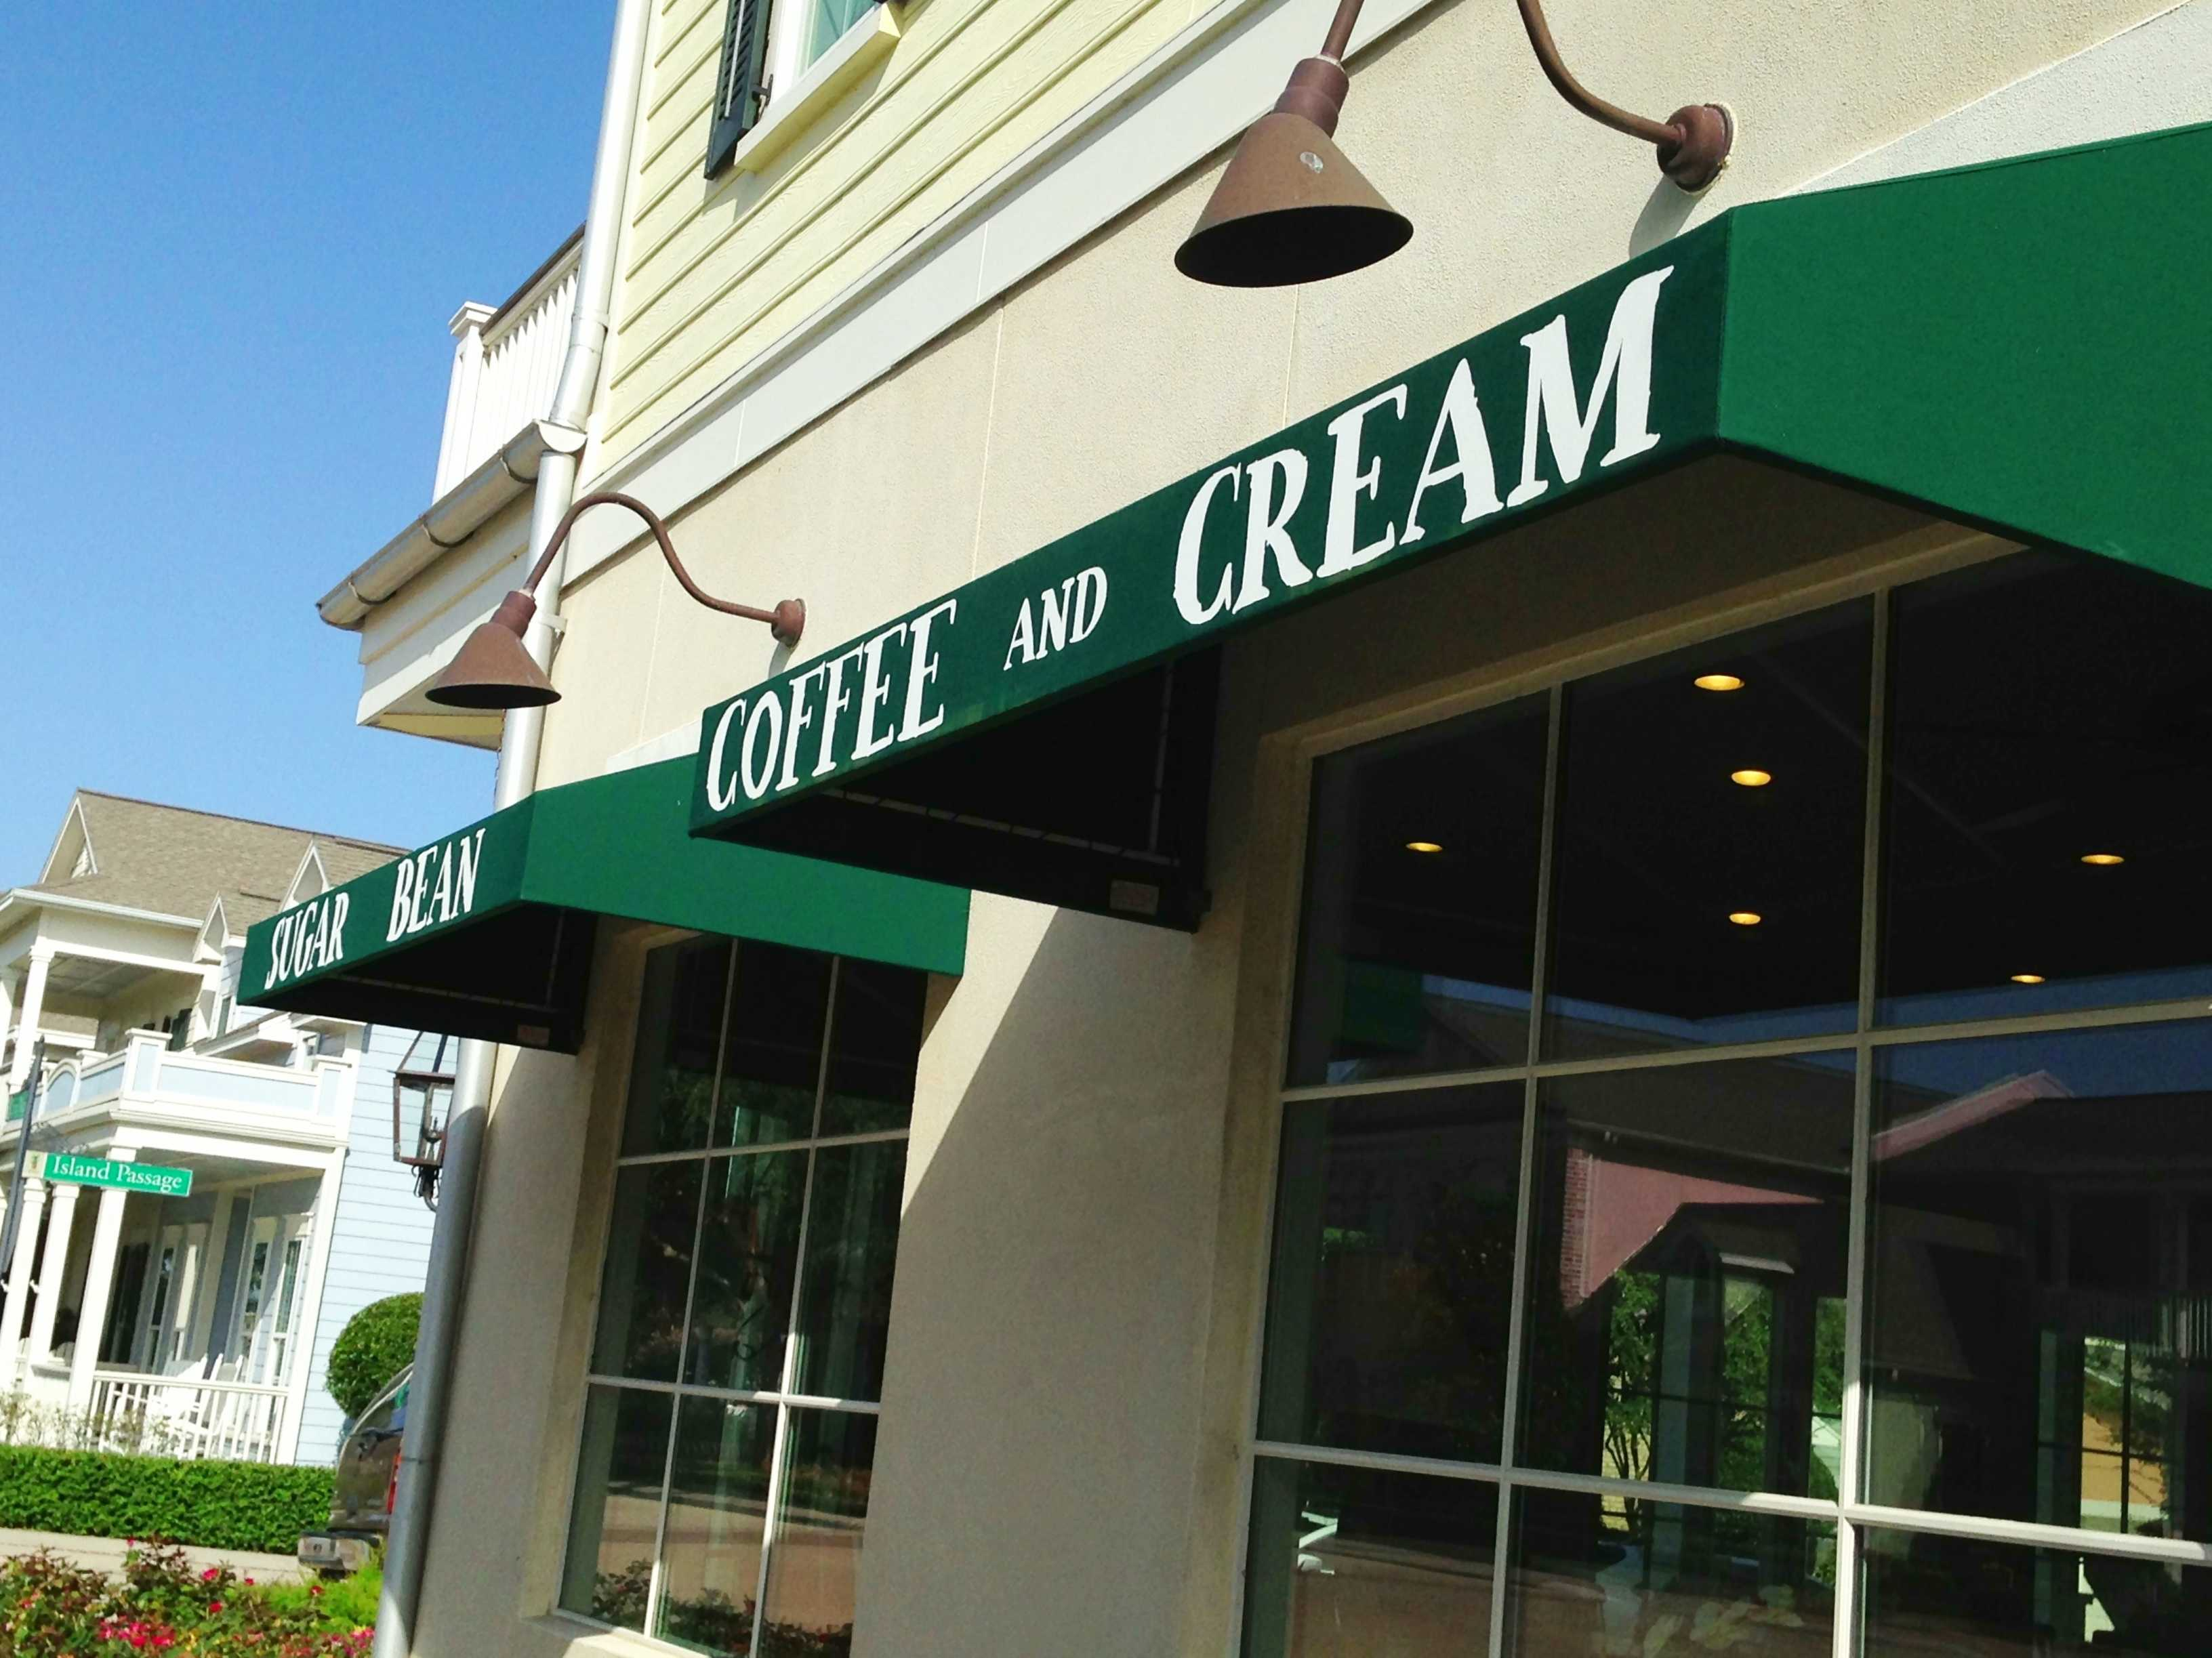 Sugar Bean Coffee and Cream Tour